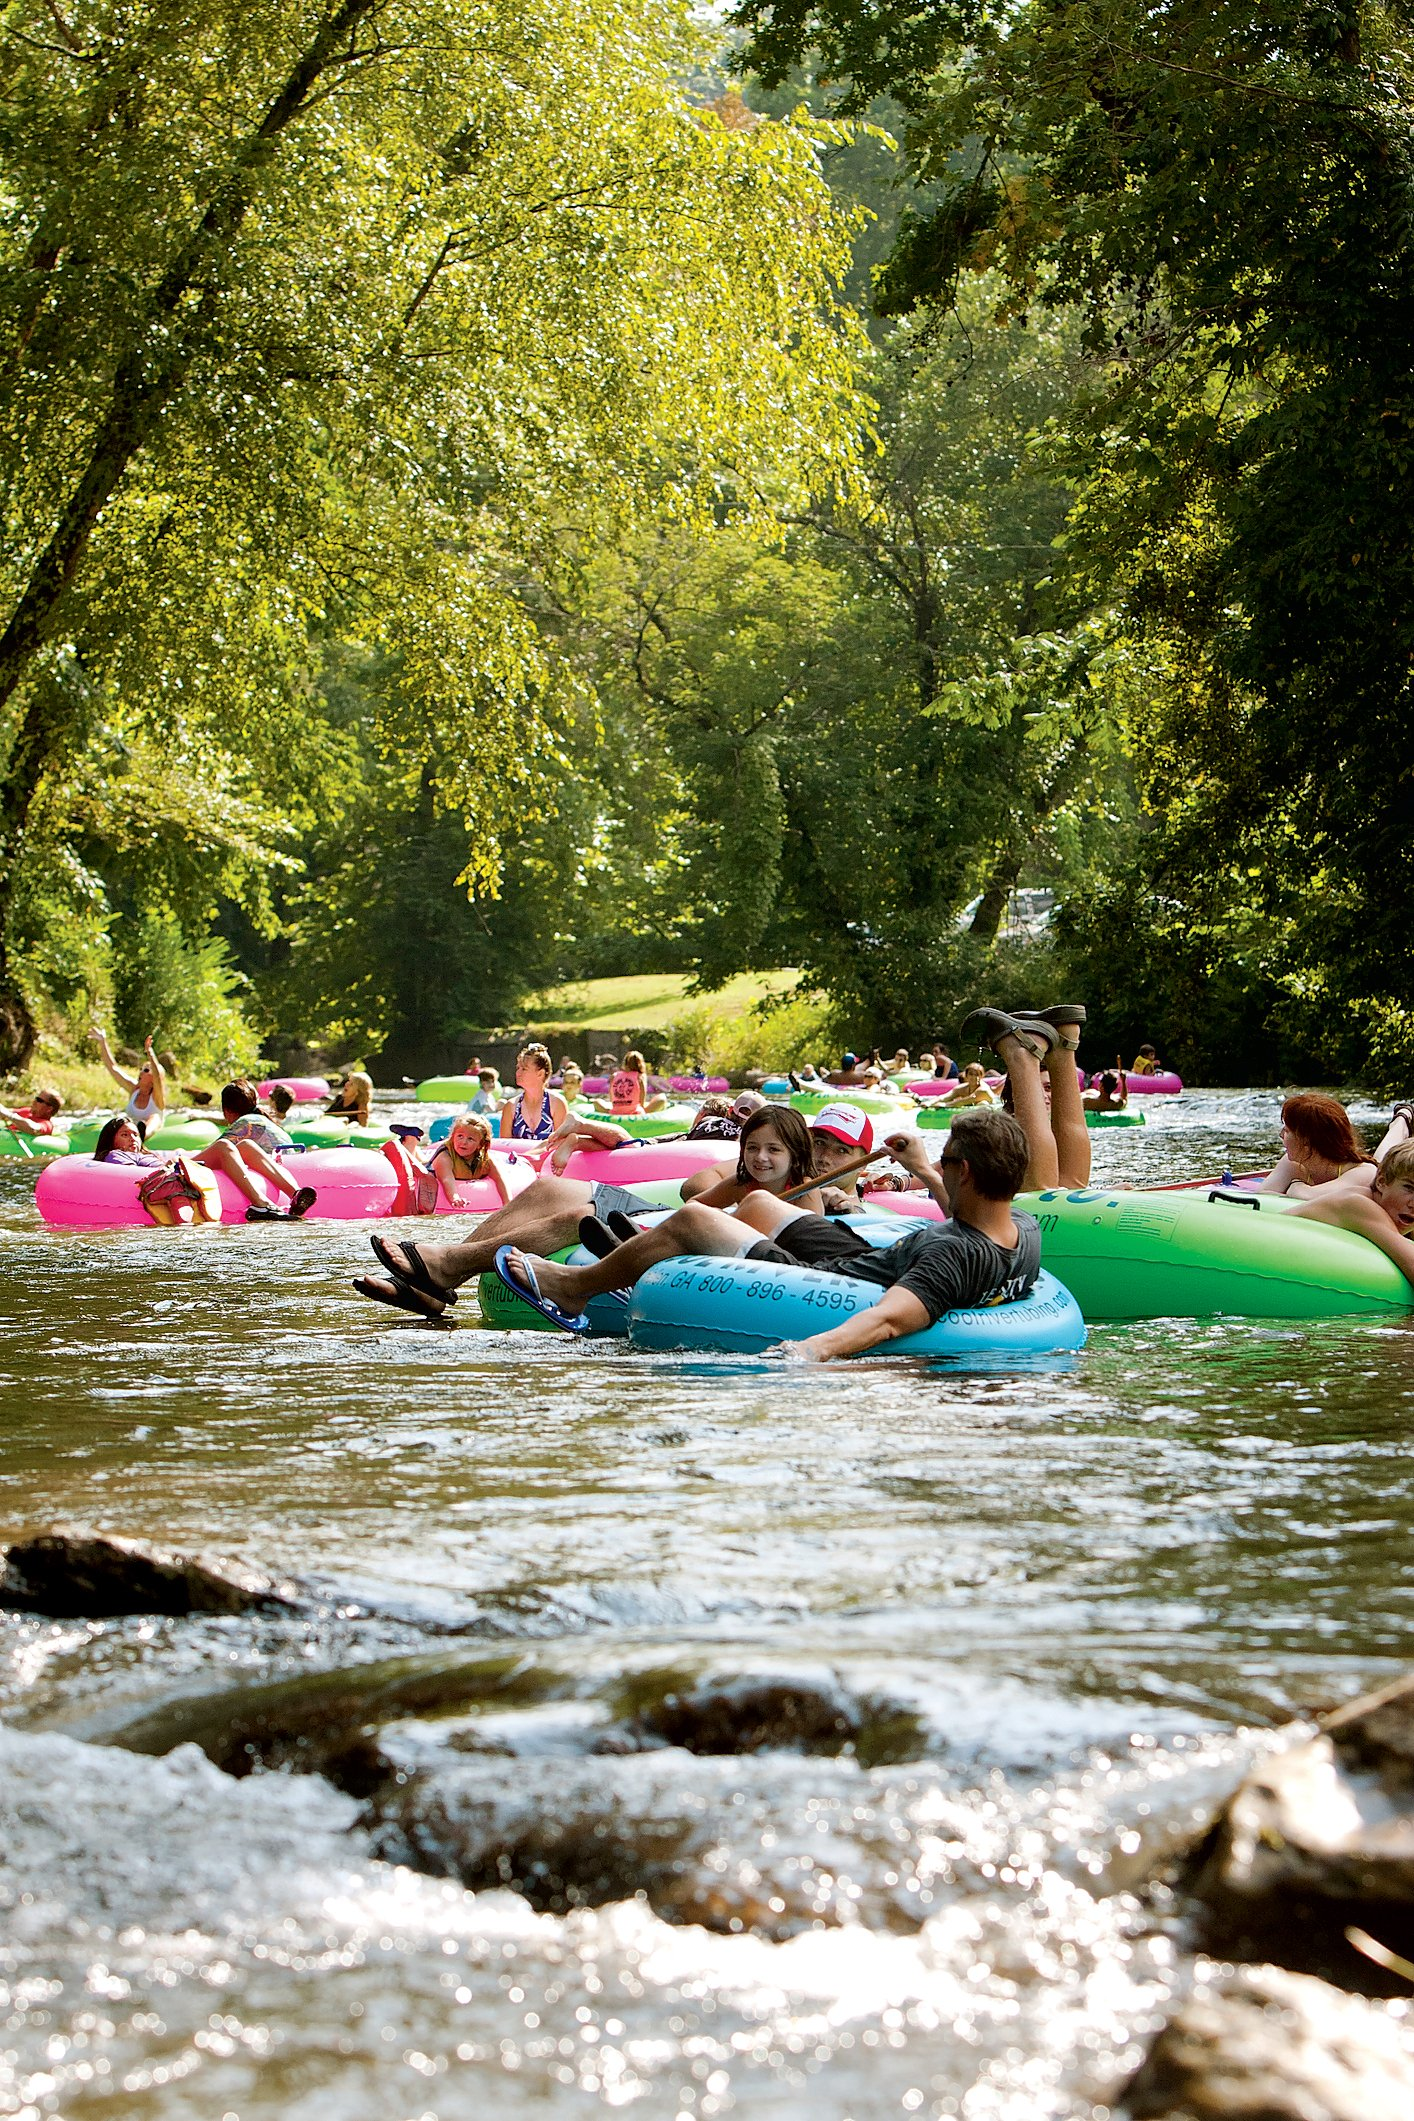 Outfitters throughout the region offer tubing trips for every speed—from calm water to rapids.